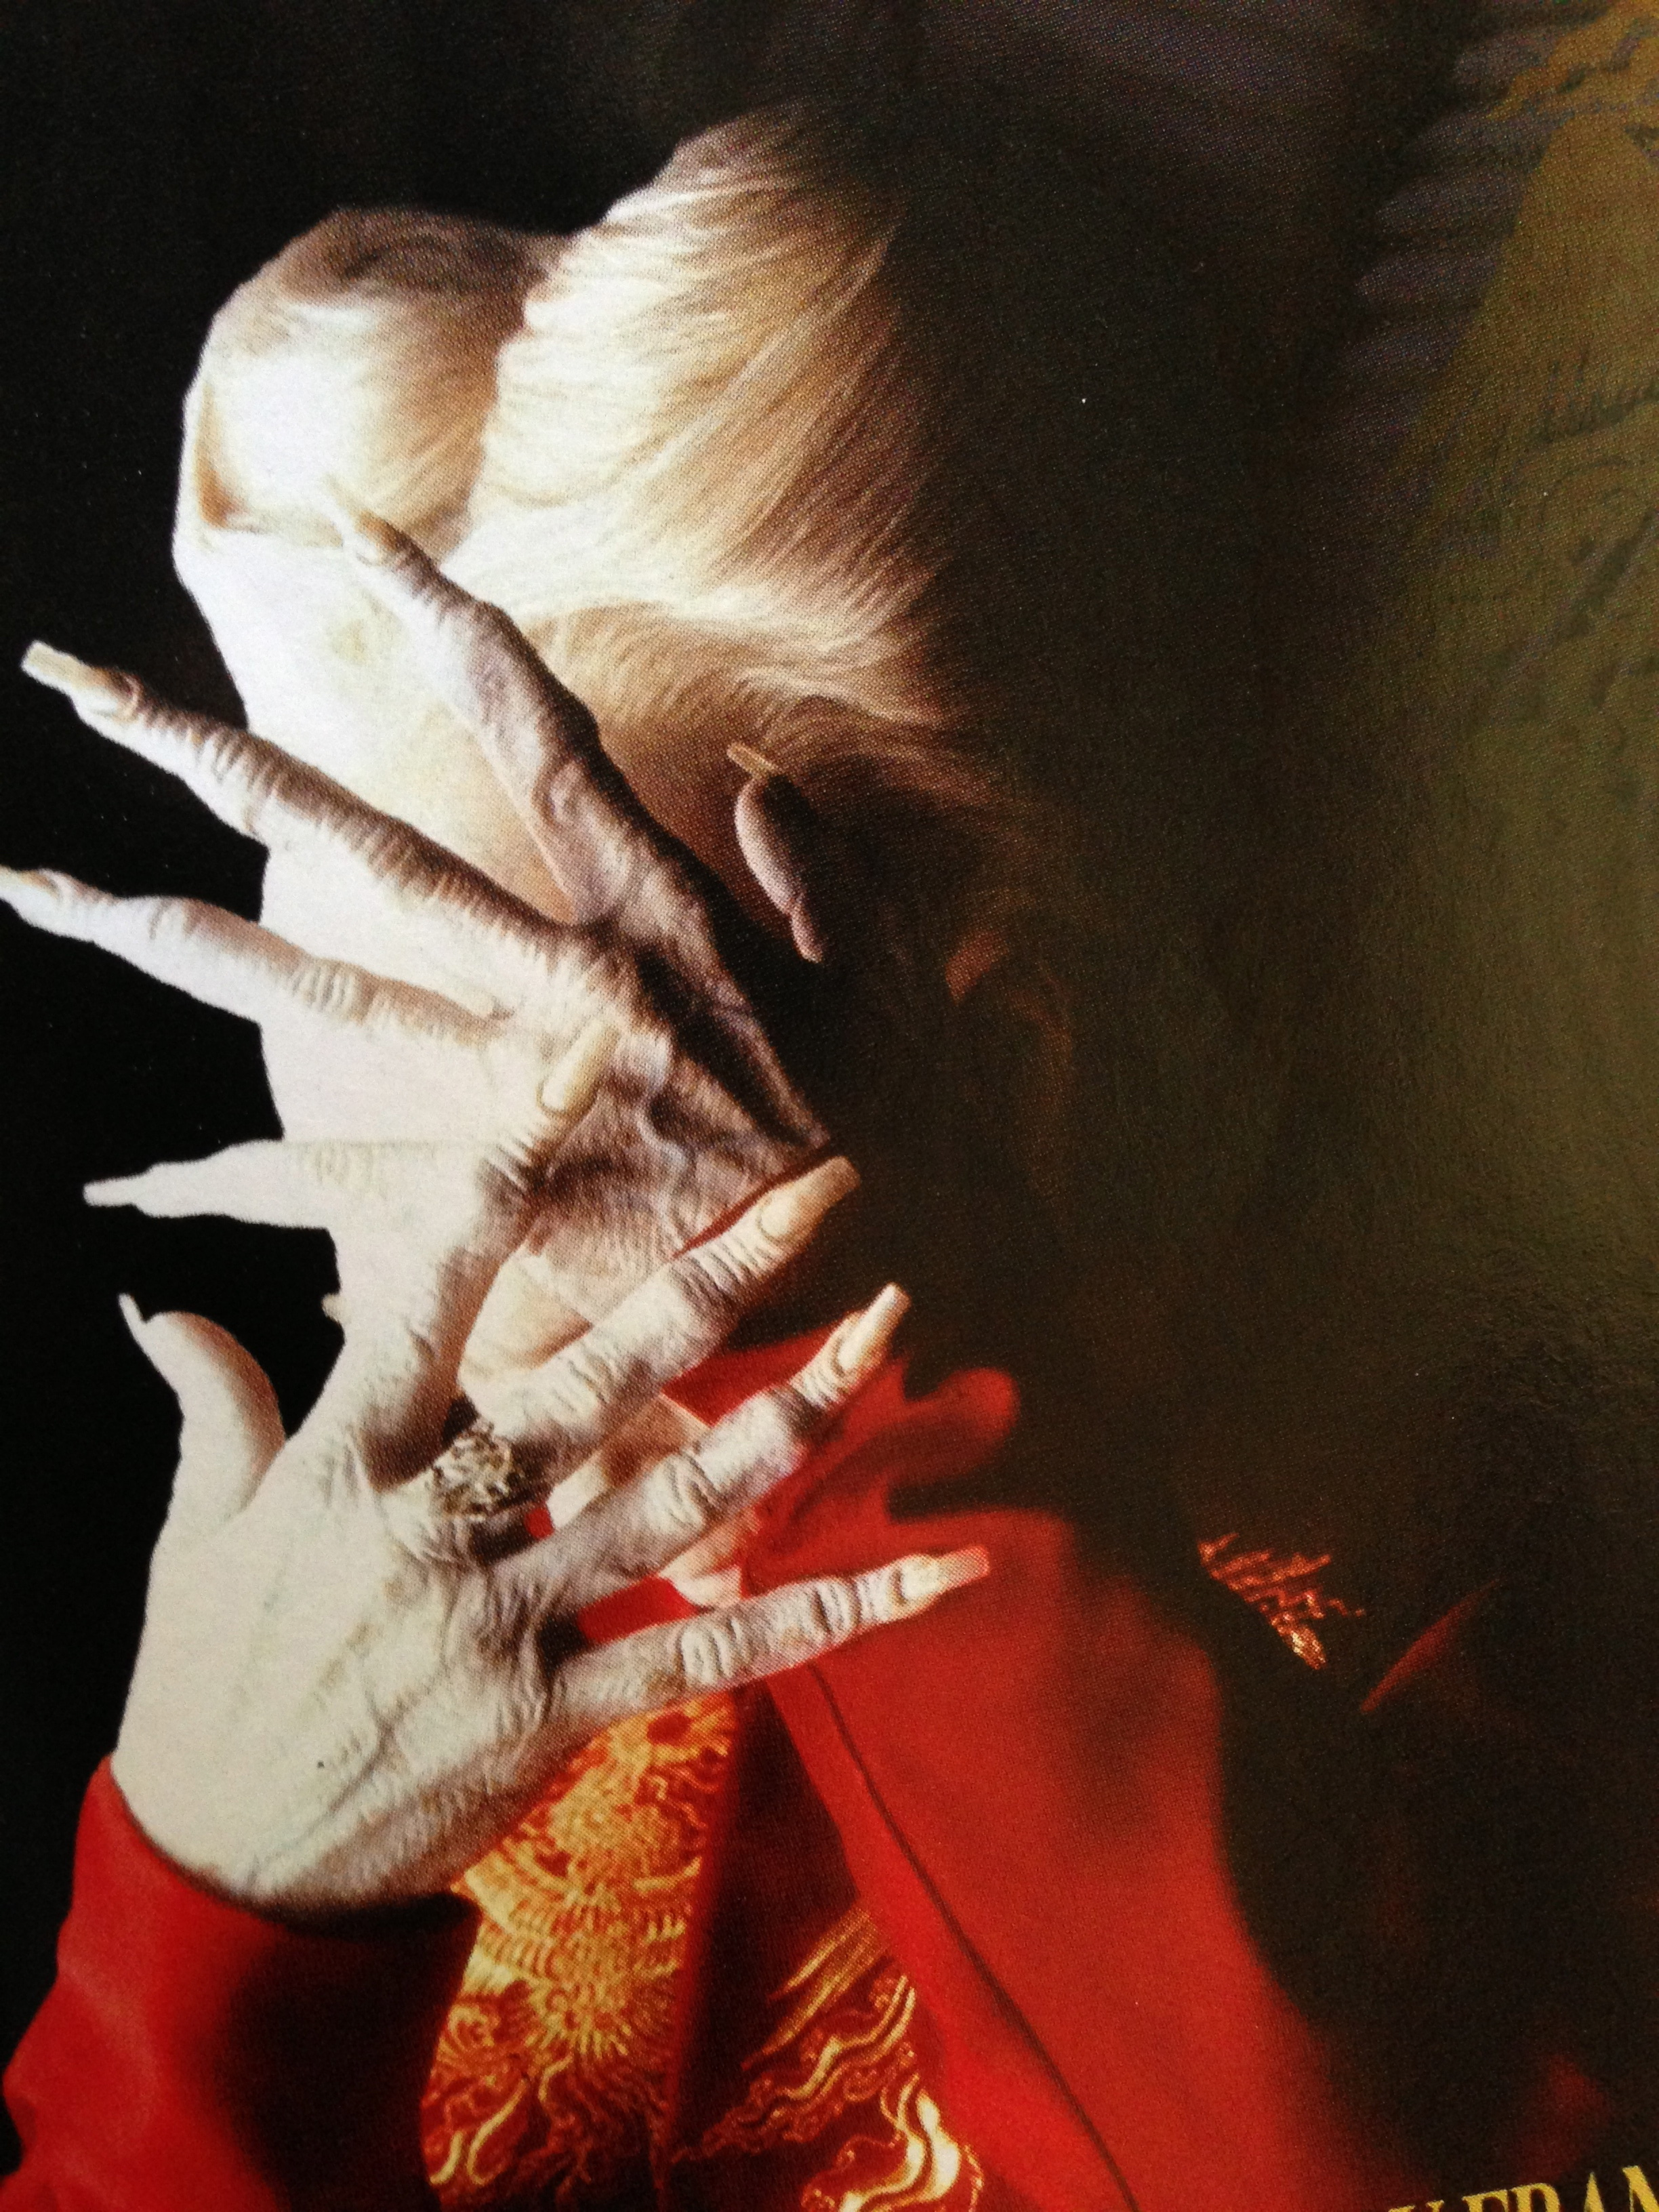 Image from Dracula showing Oldman in full elderly vampire make up, bouffant white hair and long fingers with his hands dramatically over his face